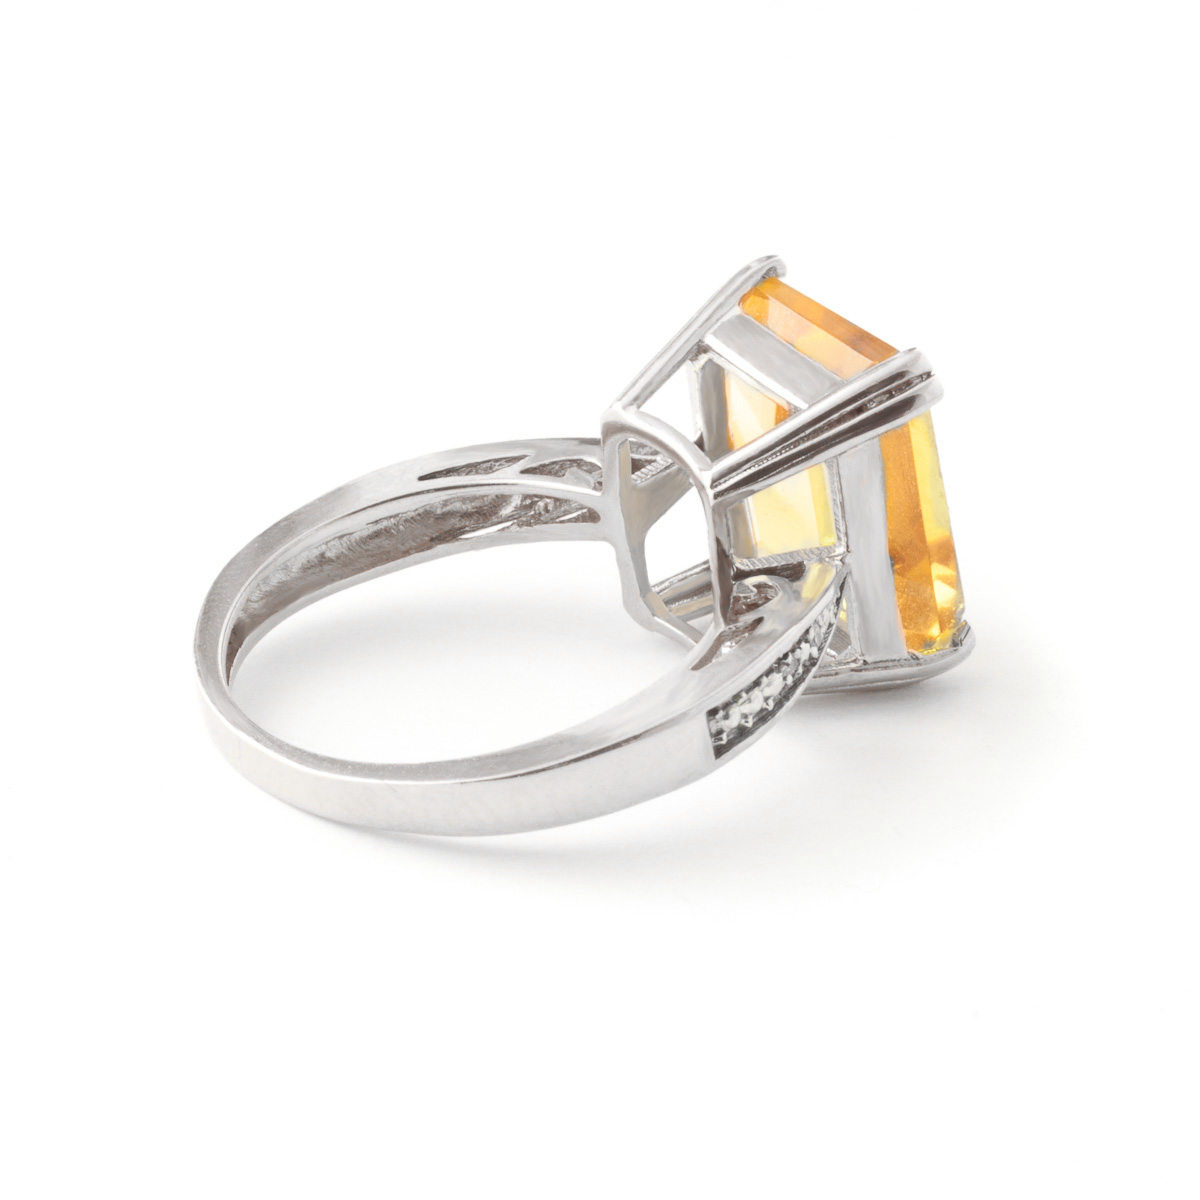 Octagon Cut Citrine Ring 5.62 ctw in 9ct White Gold